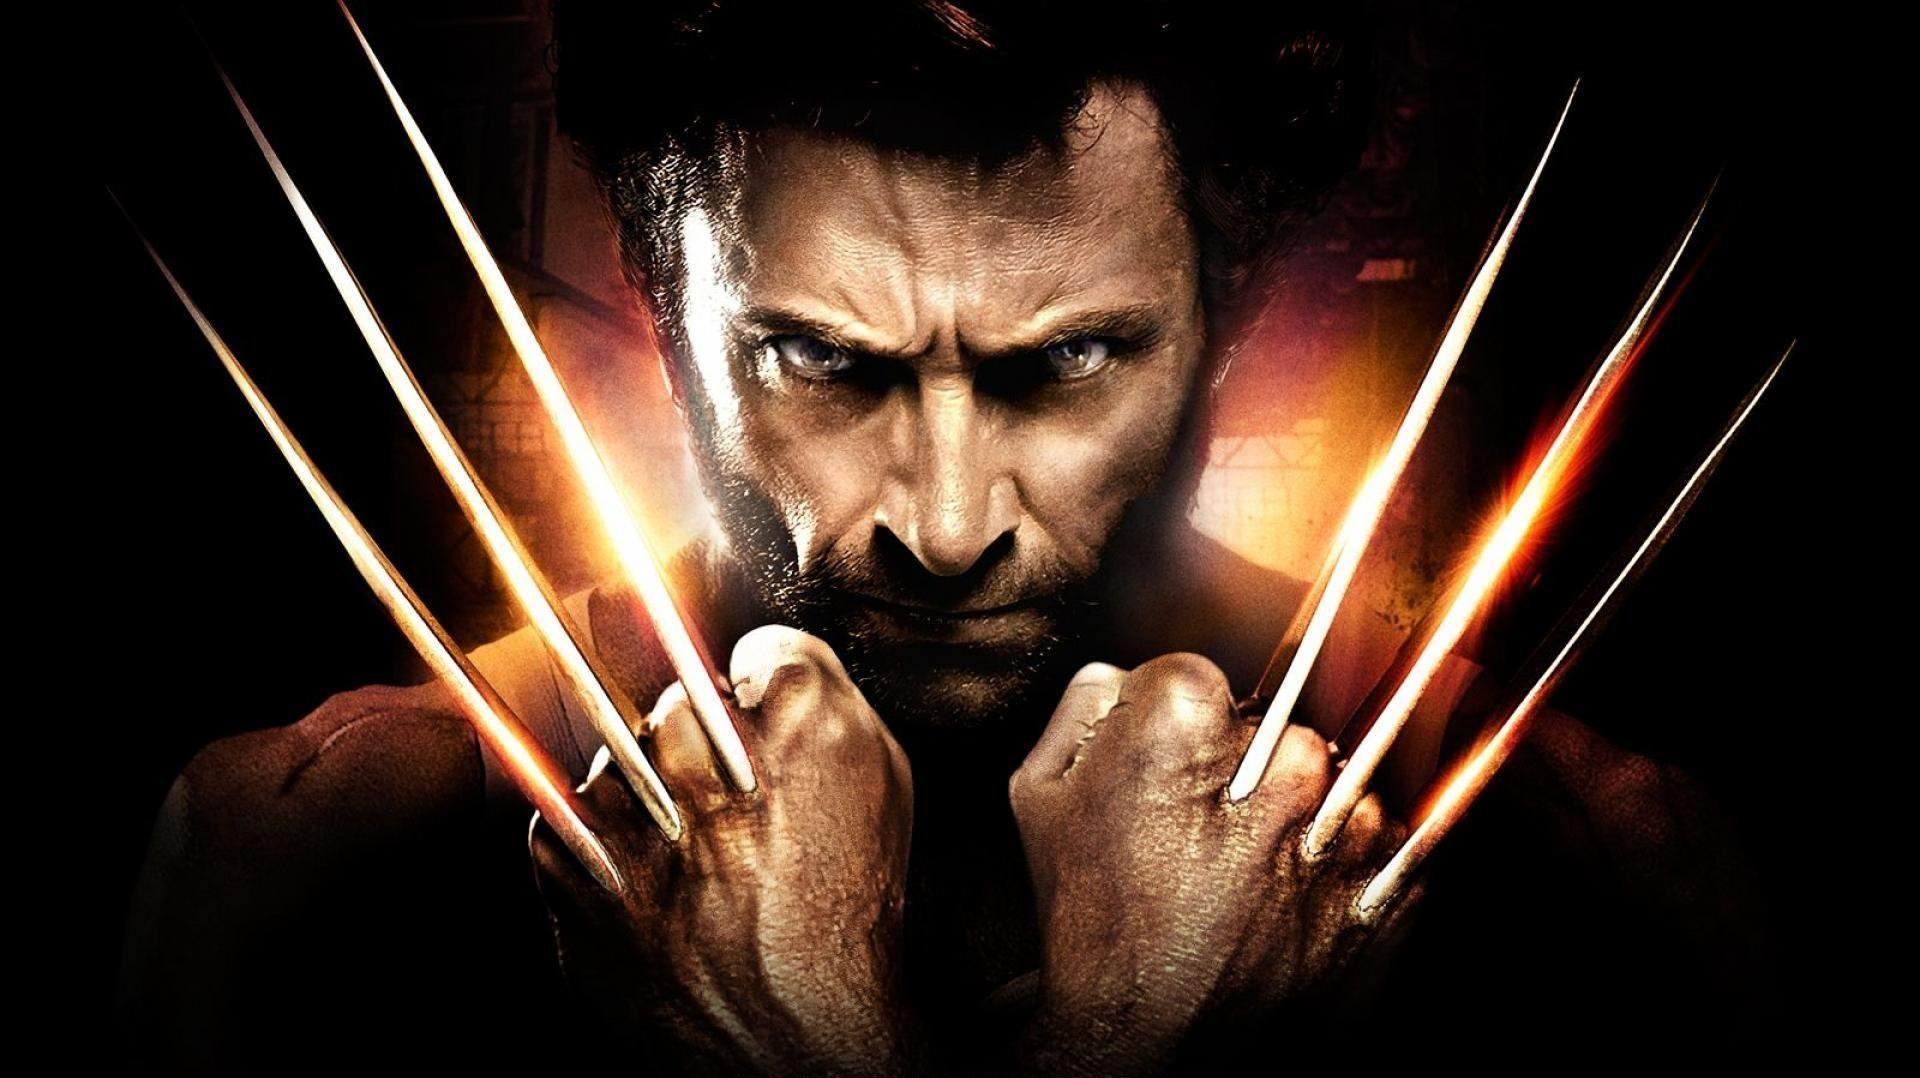 download 2015 the wolverine 3d wallpapers for android hd